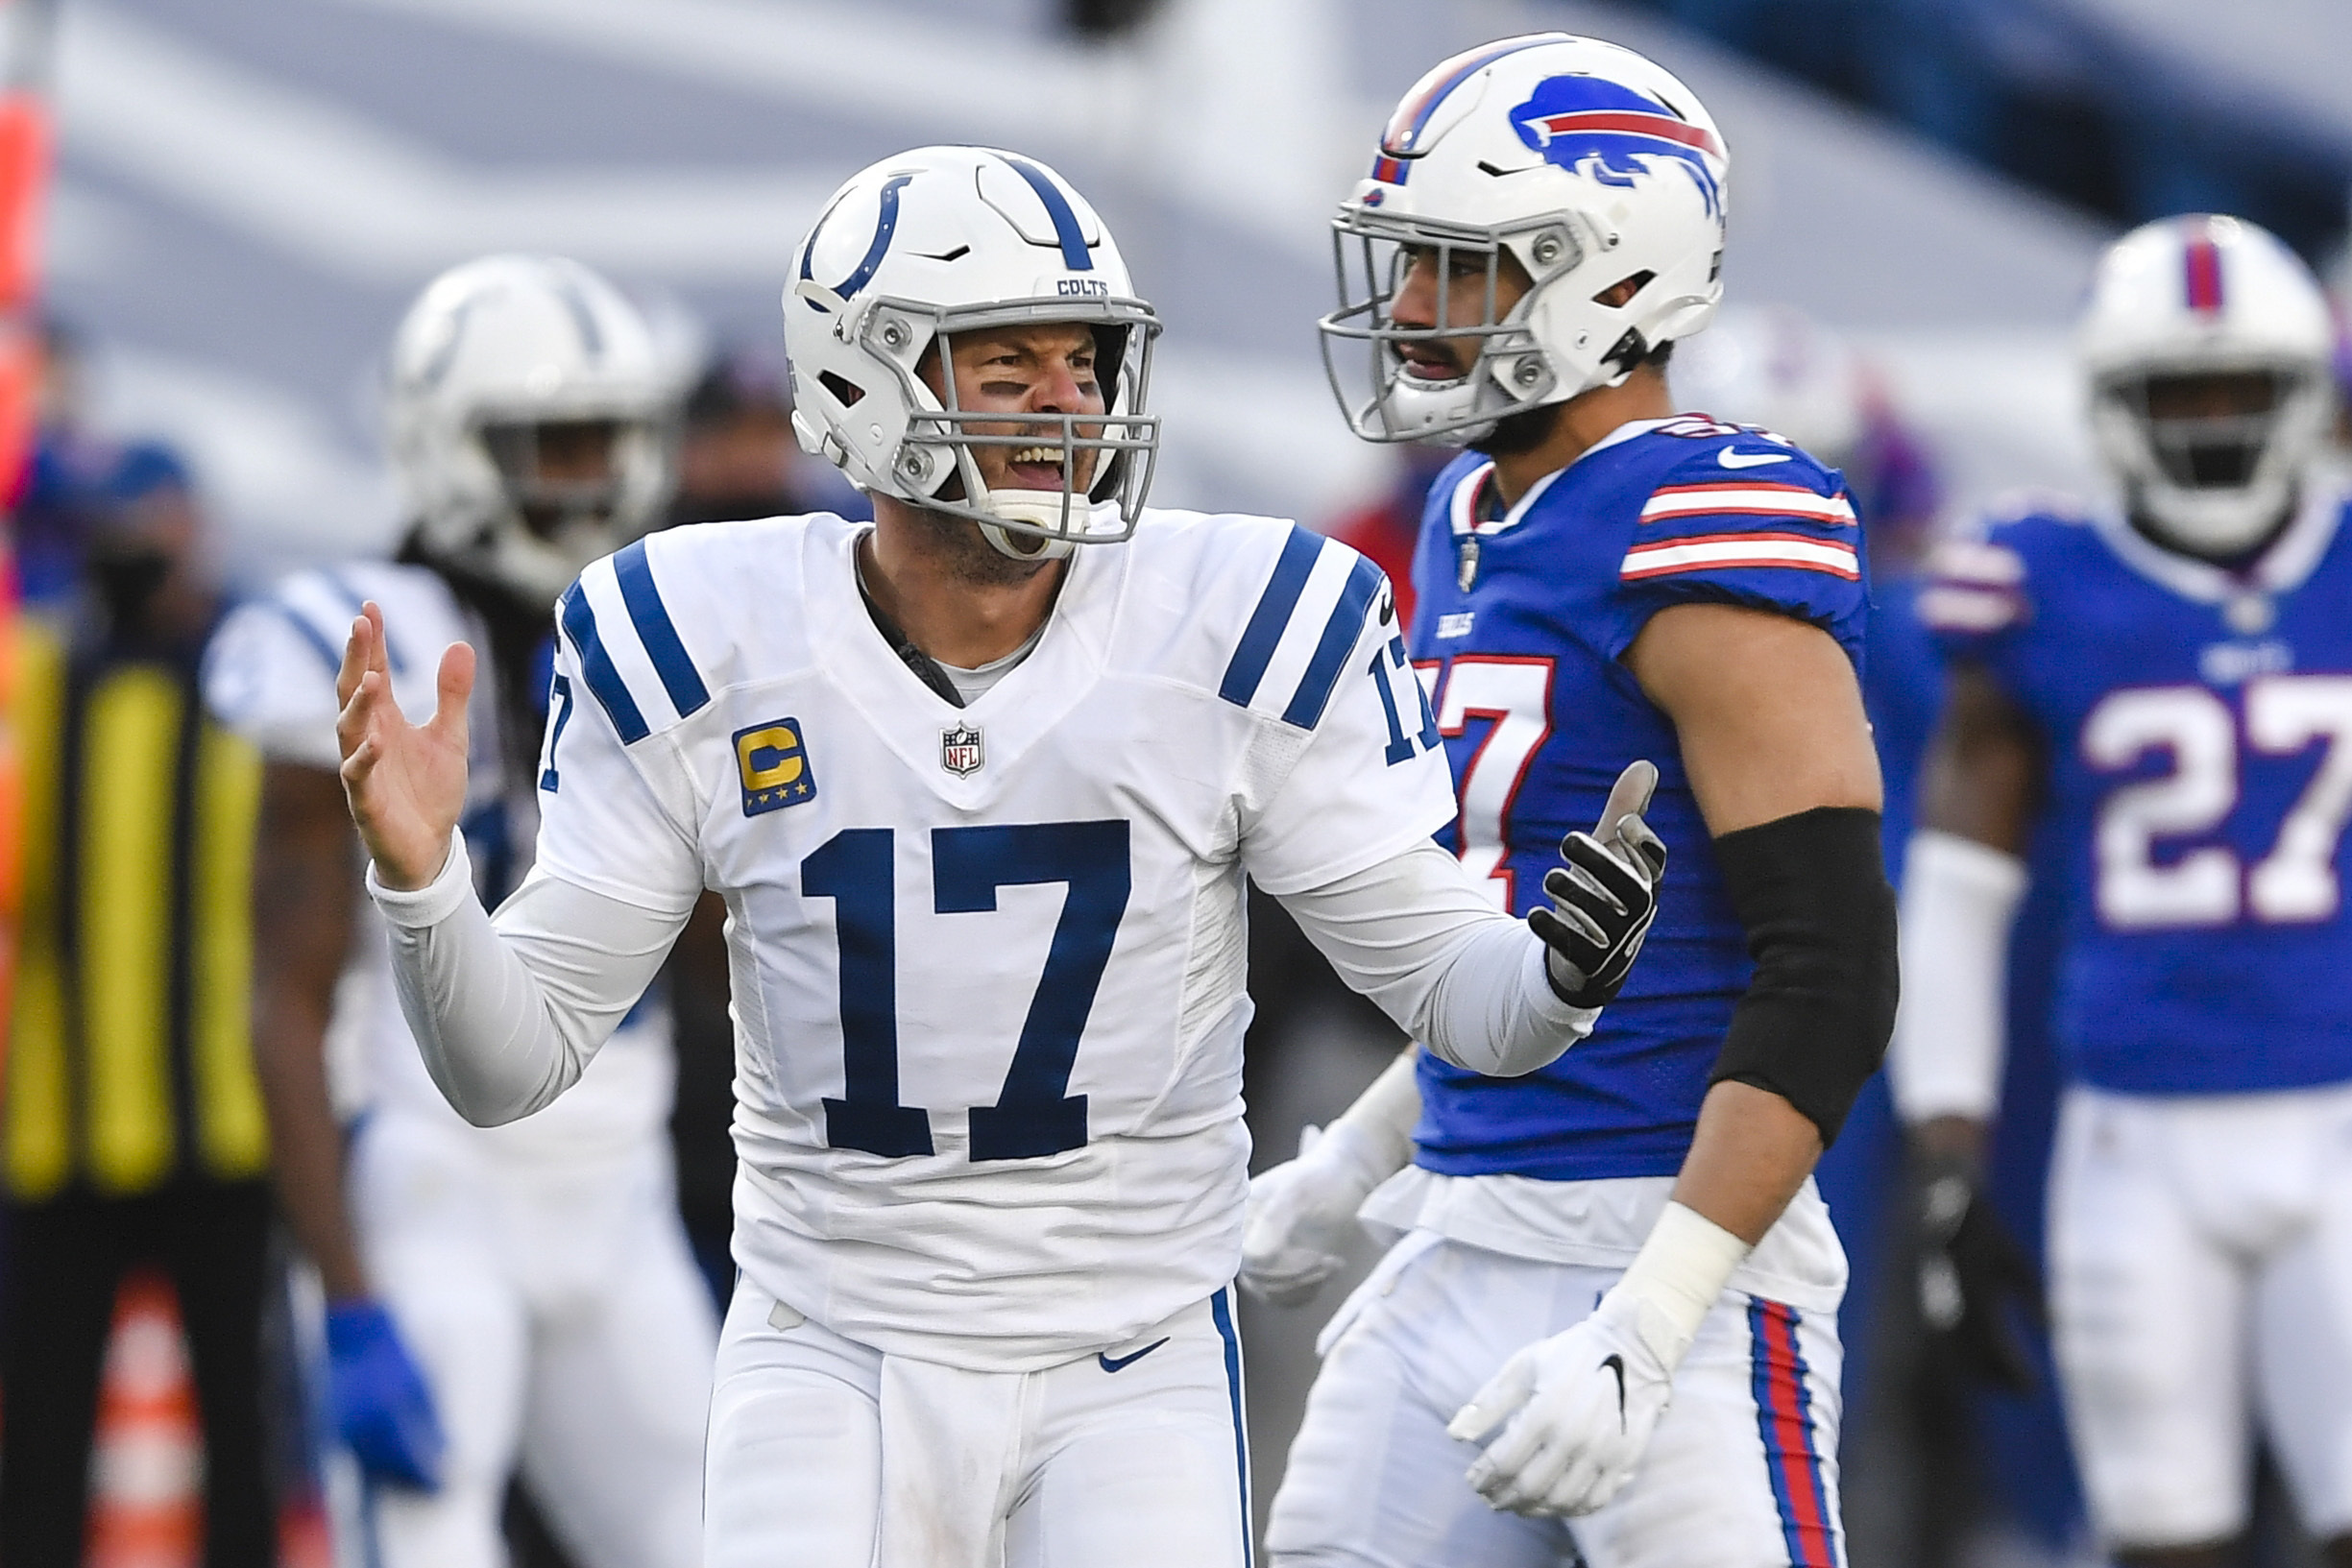 Colts quarterback Philip Rivers announced his retirement on Wednesday.